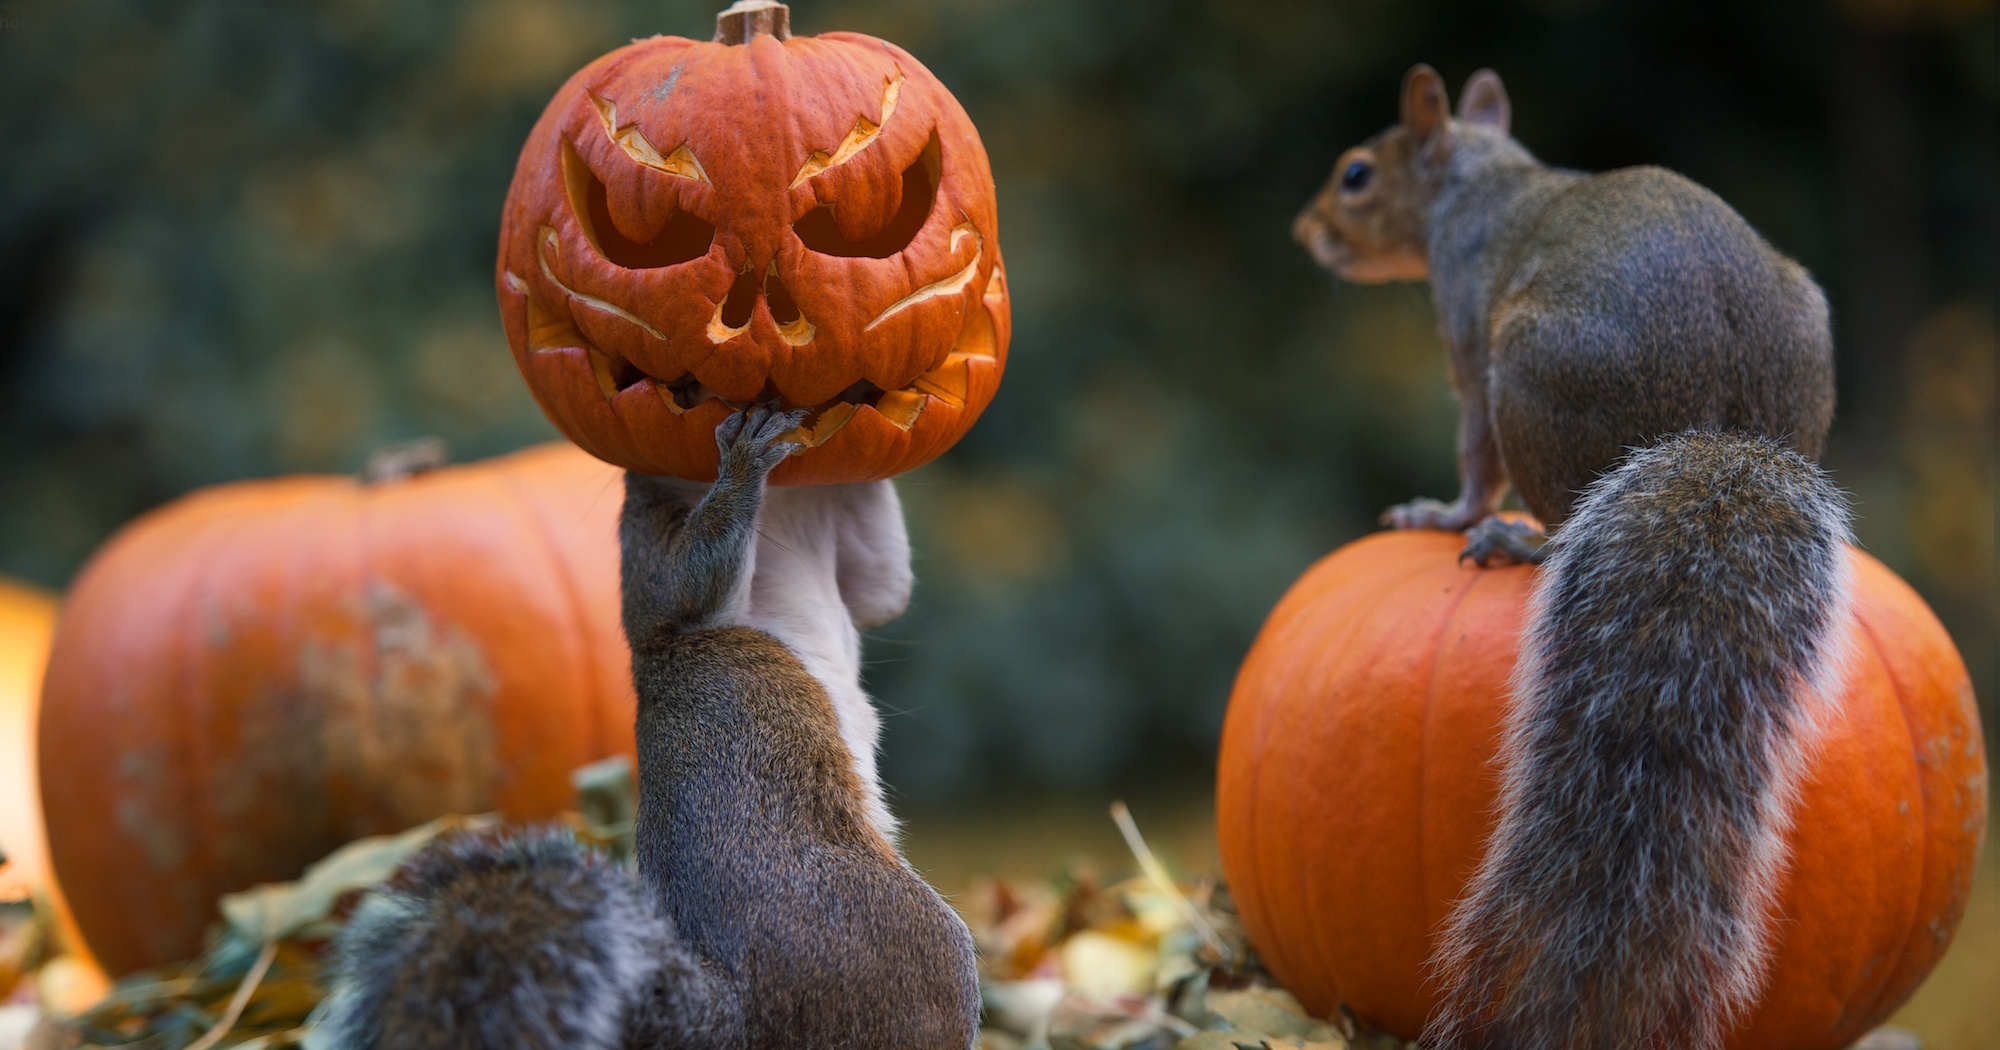 Happy Fall Wallpaper Iphone Squirrel Tries To Steal A Carved Pumpkin From Photographer